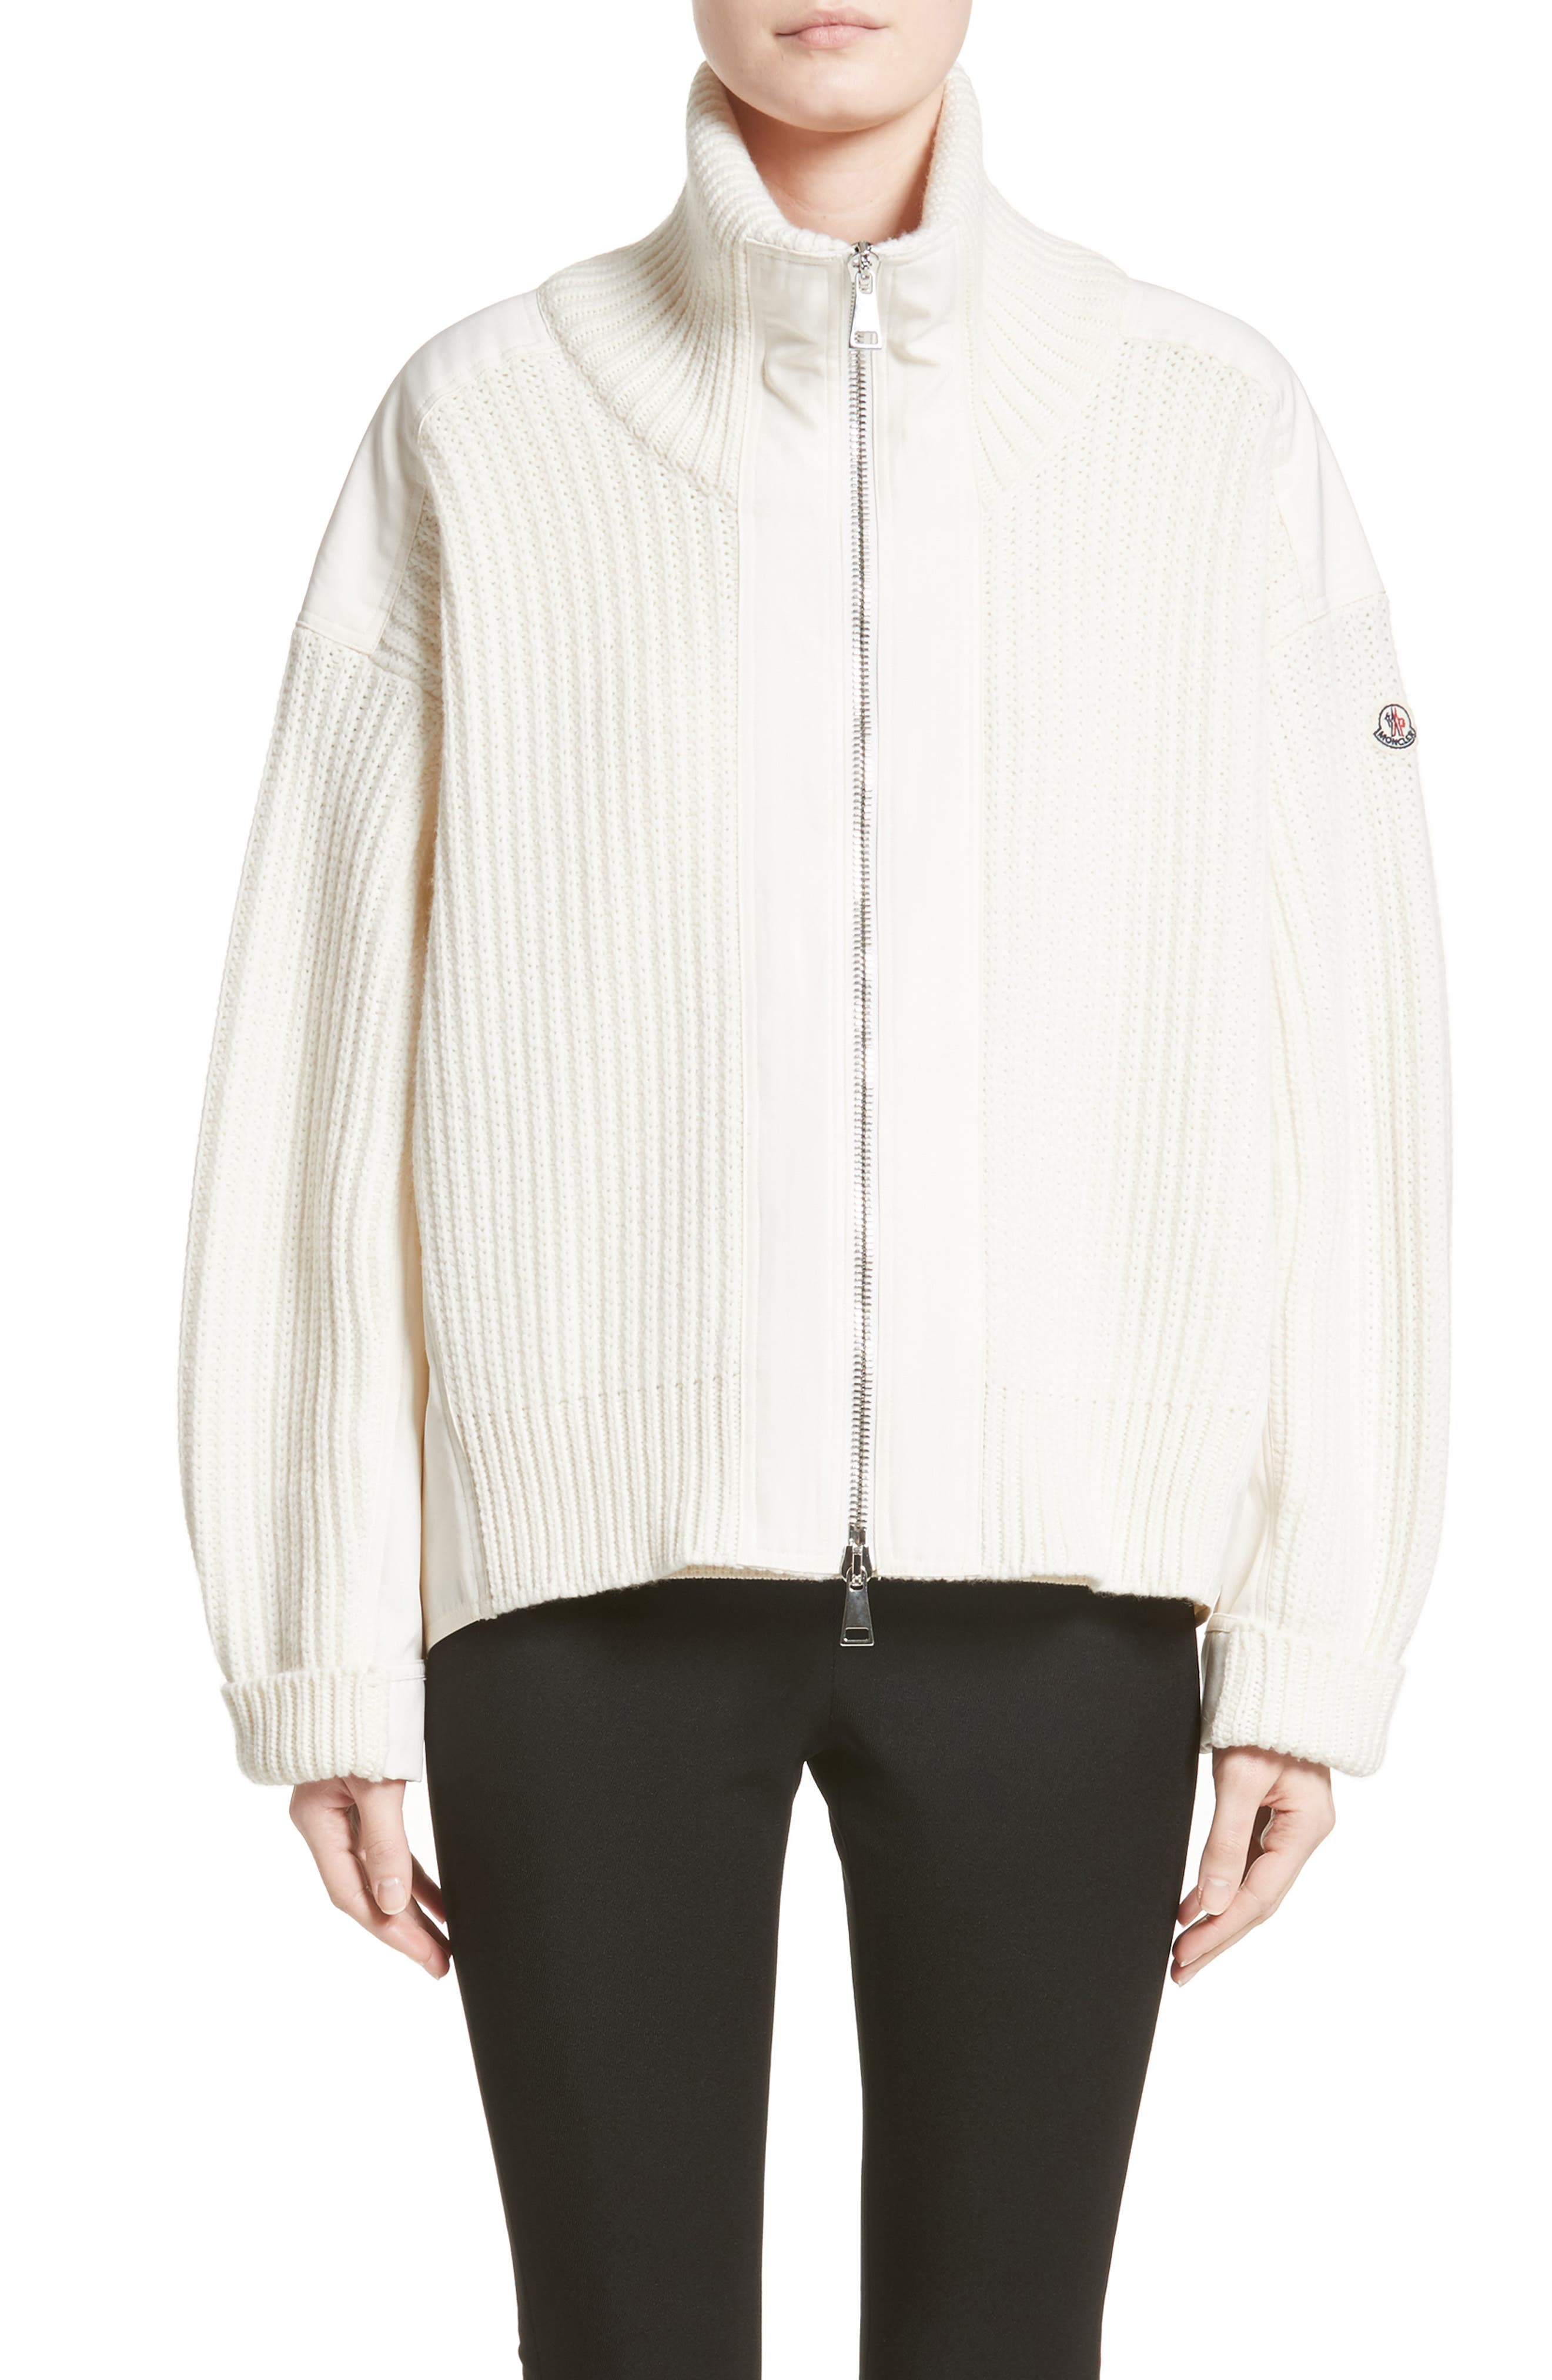 Wool & Cashmere Cardigan,                         Main,                         color, White